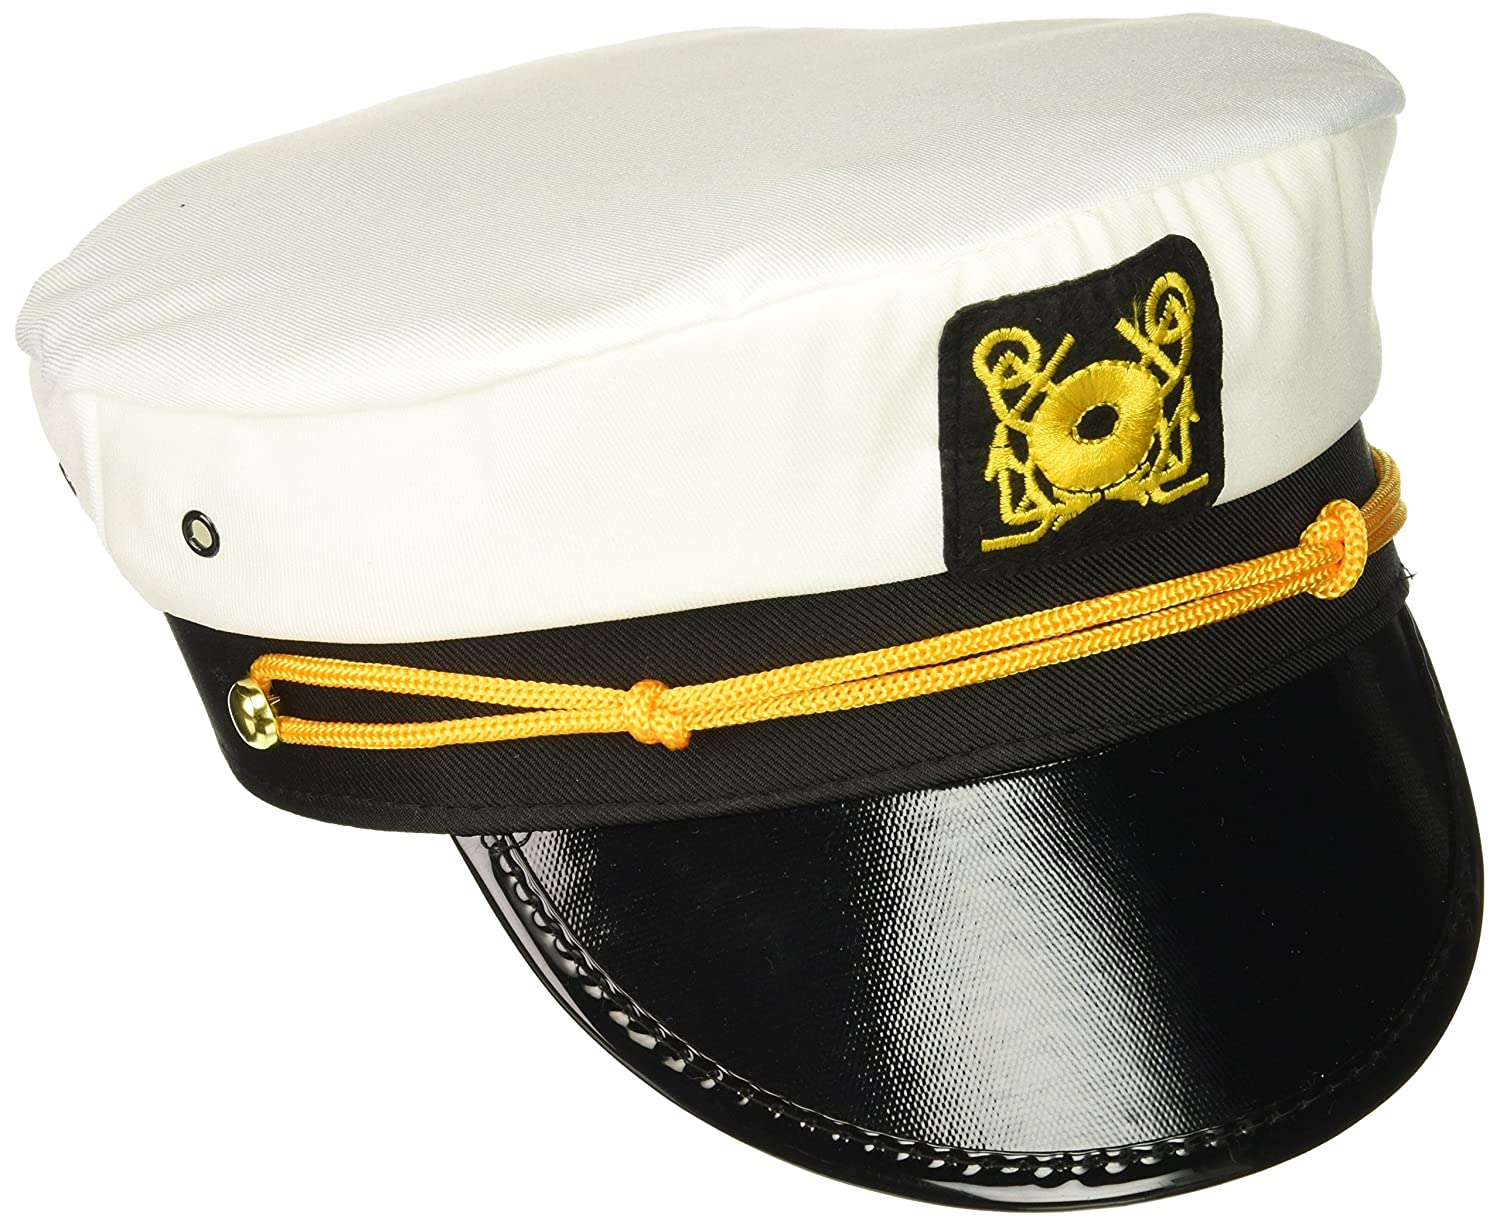 Rhode Island Novelty Adult Yacht Captain Hat Costume Accessory-One size p-am221A